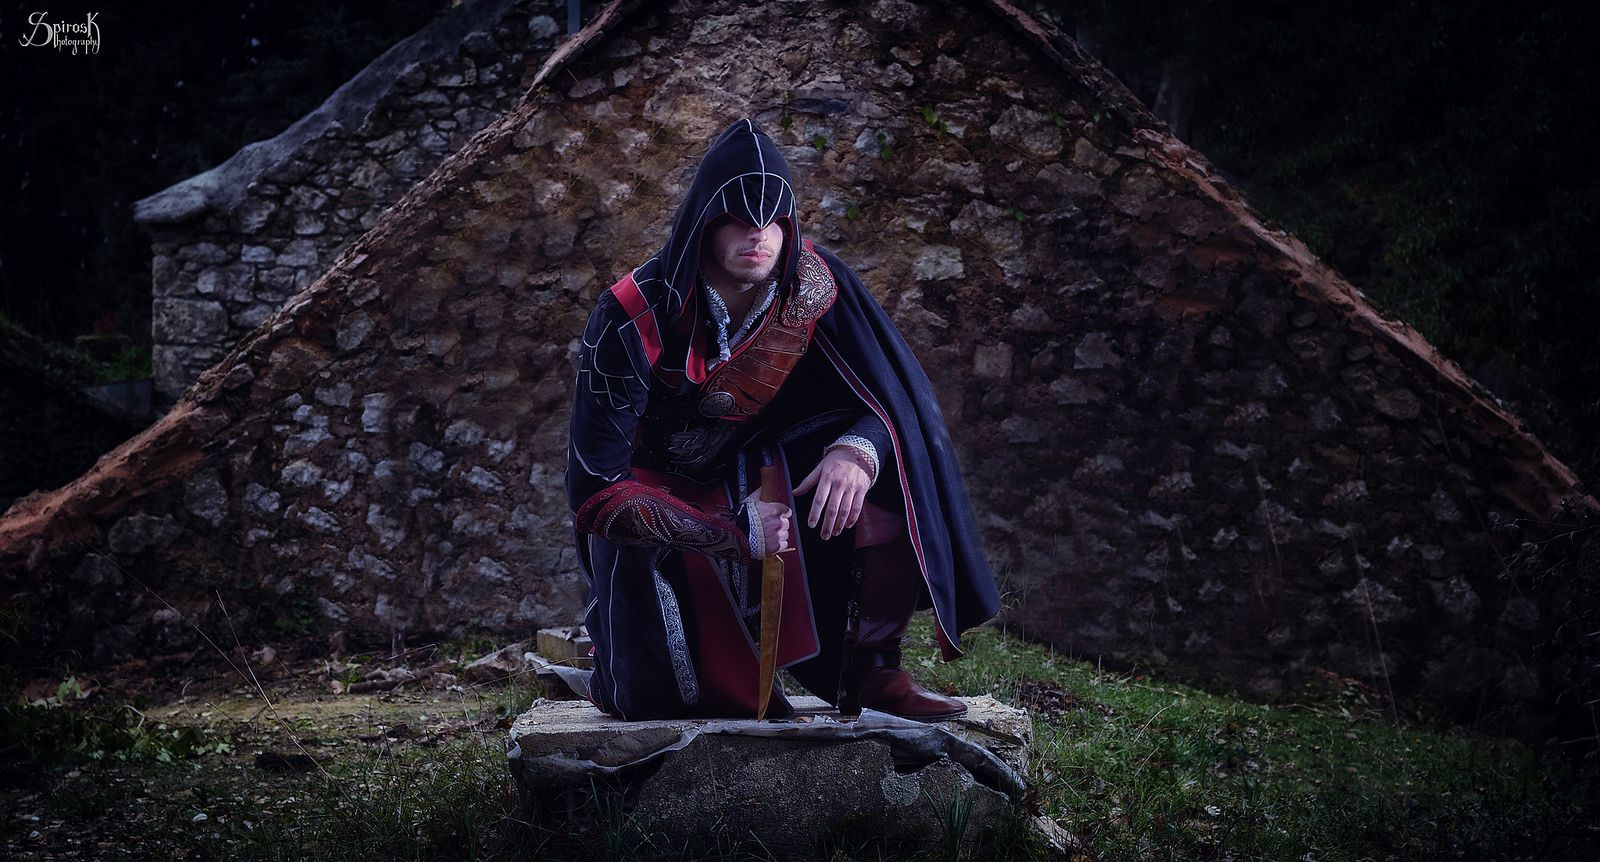 Thanatos Industries is Ezio Auditore de Firenze (Assassin's Creed) by SpirosK photography   by SpirosK photography